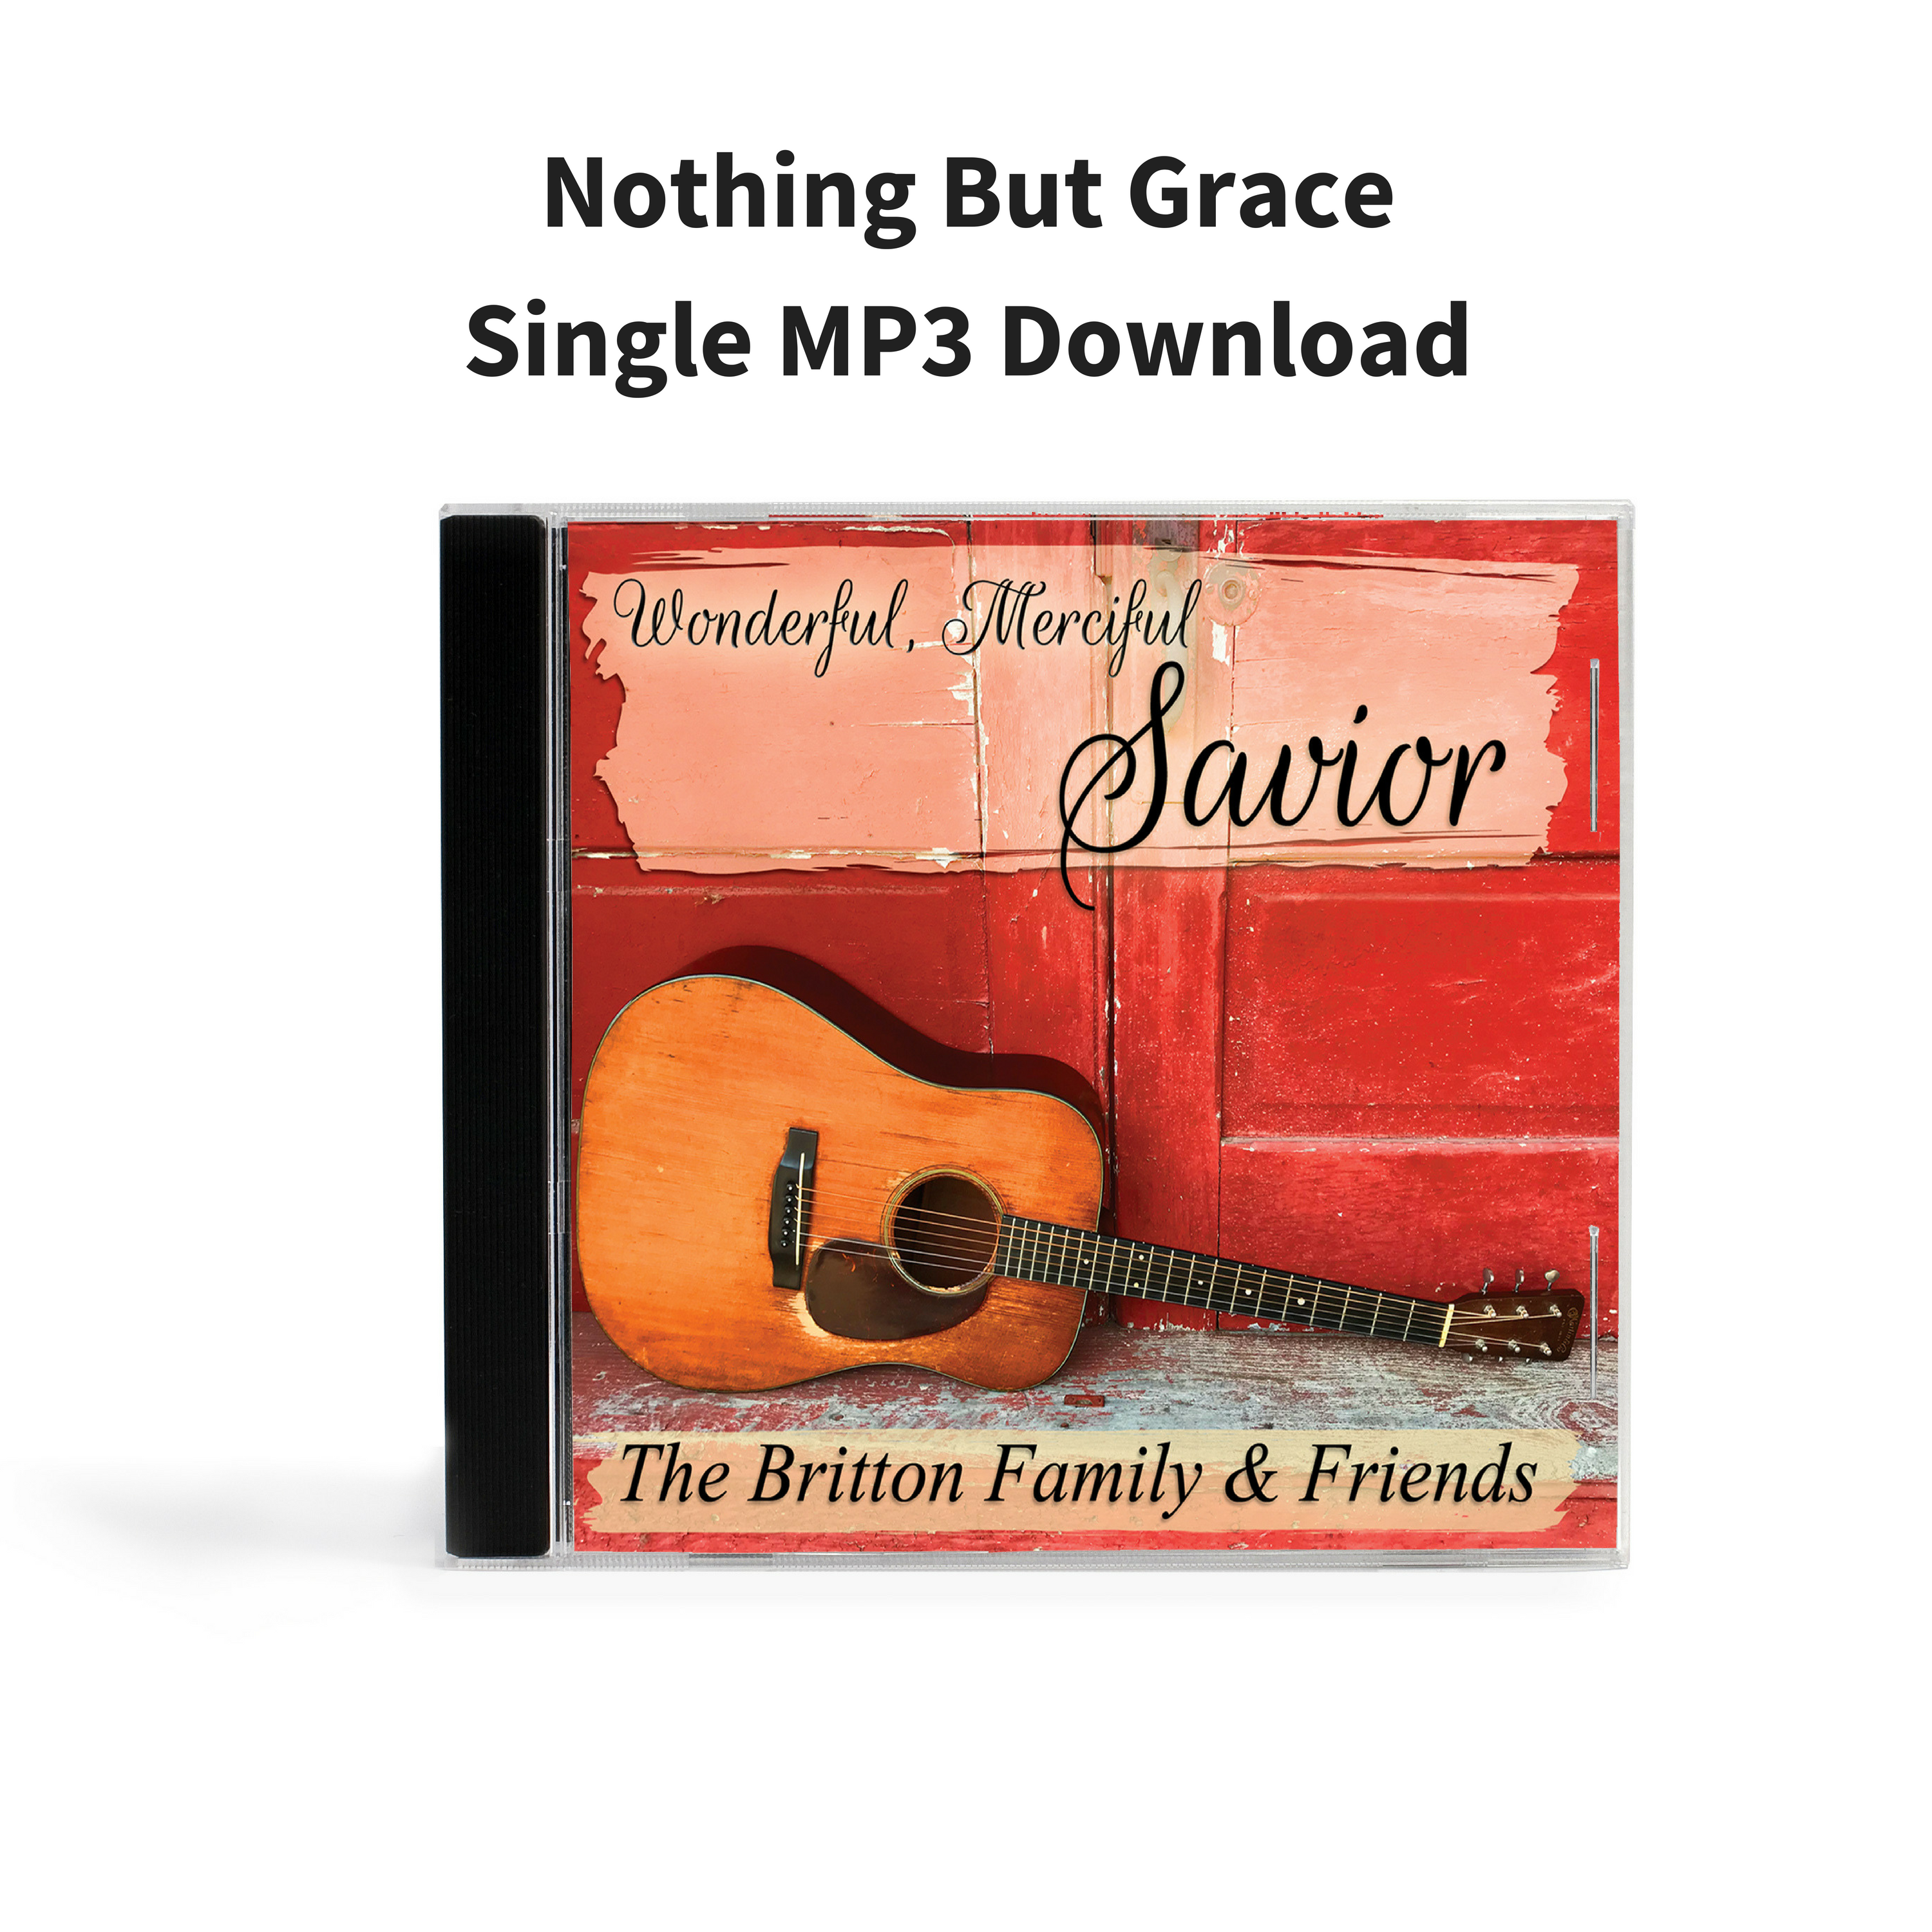 Nothing But Grace - Single MP3 Download 000010